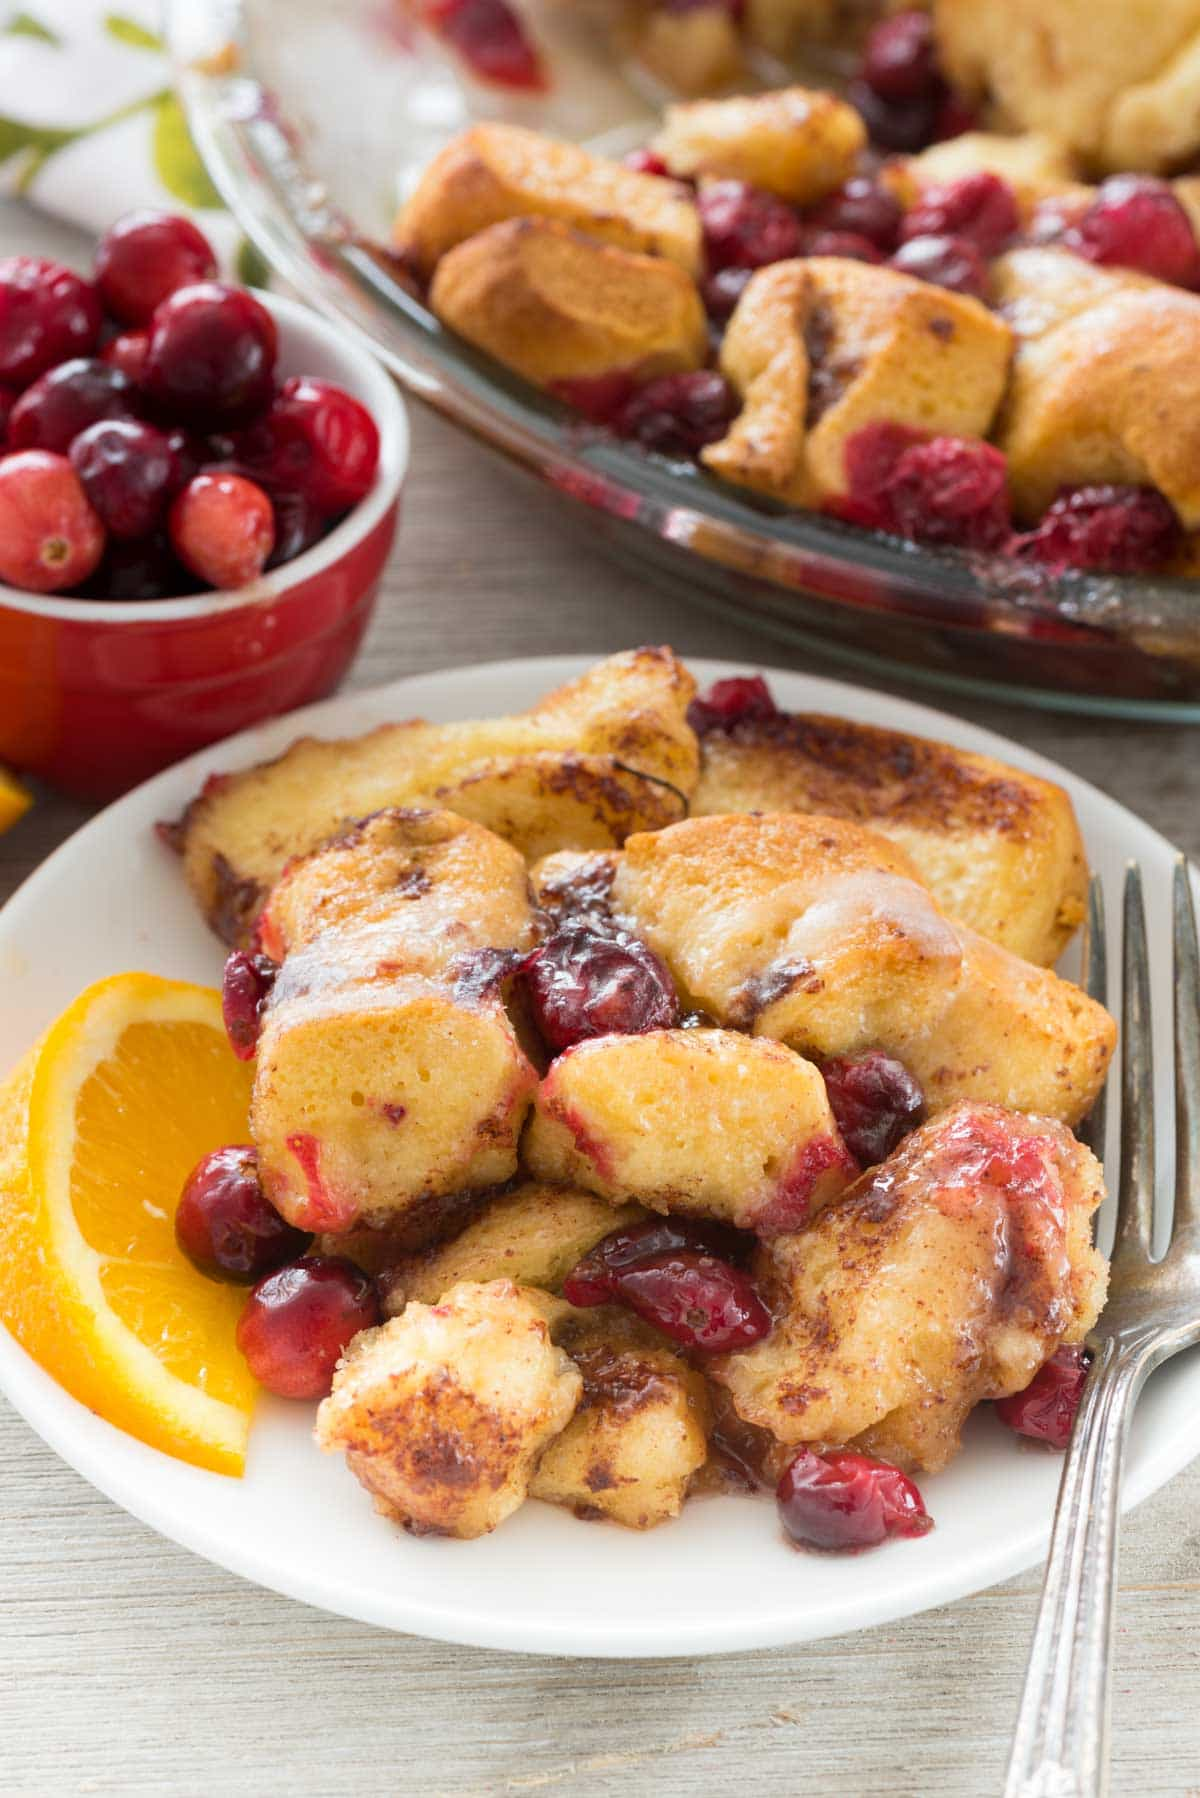 Cranberry Cinnamon Roll Bake - this easy bubble up bake recipe starts with cinnamon rolls. Add fresh cranberries for a holiday breakfast!